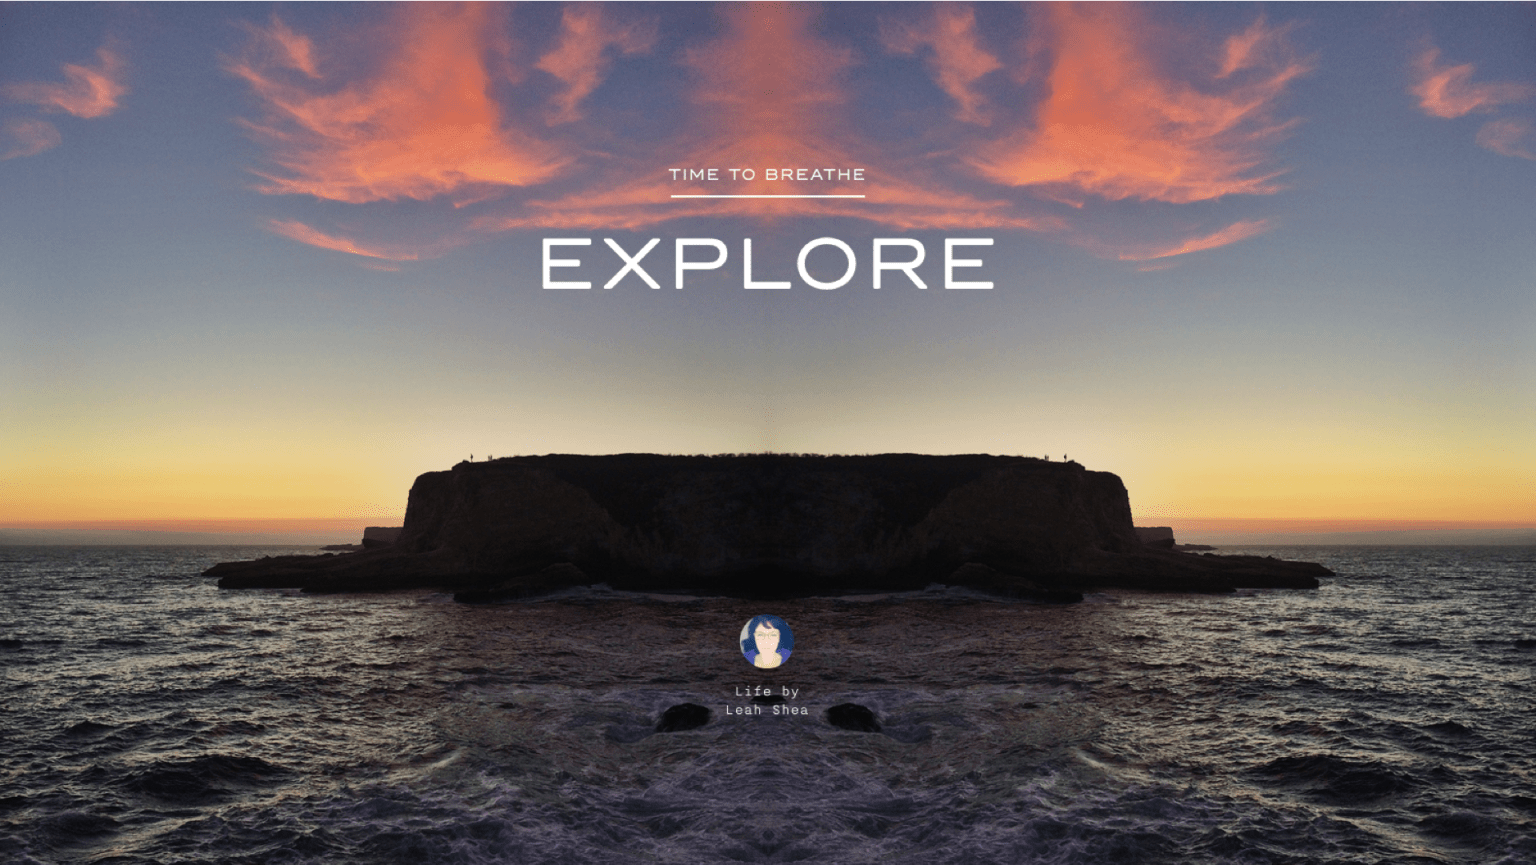 Explore - Adventure Journal